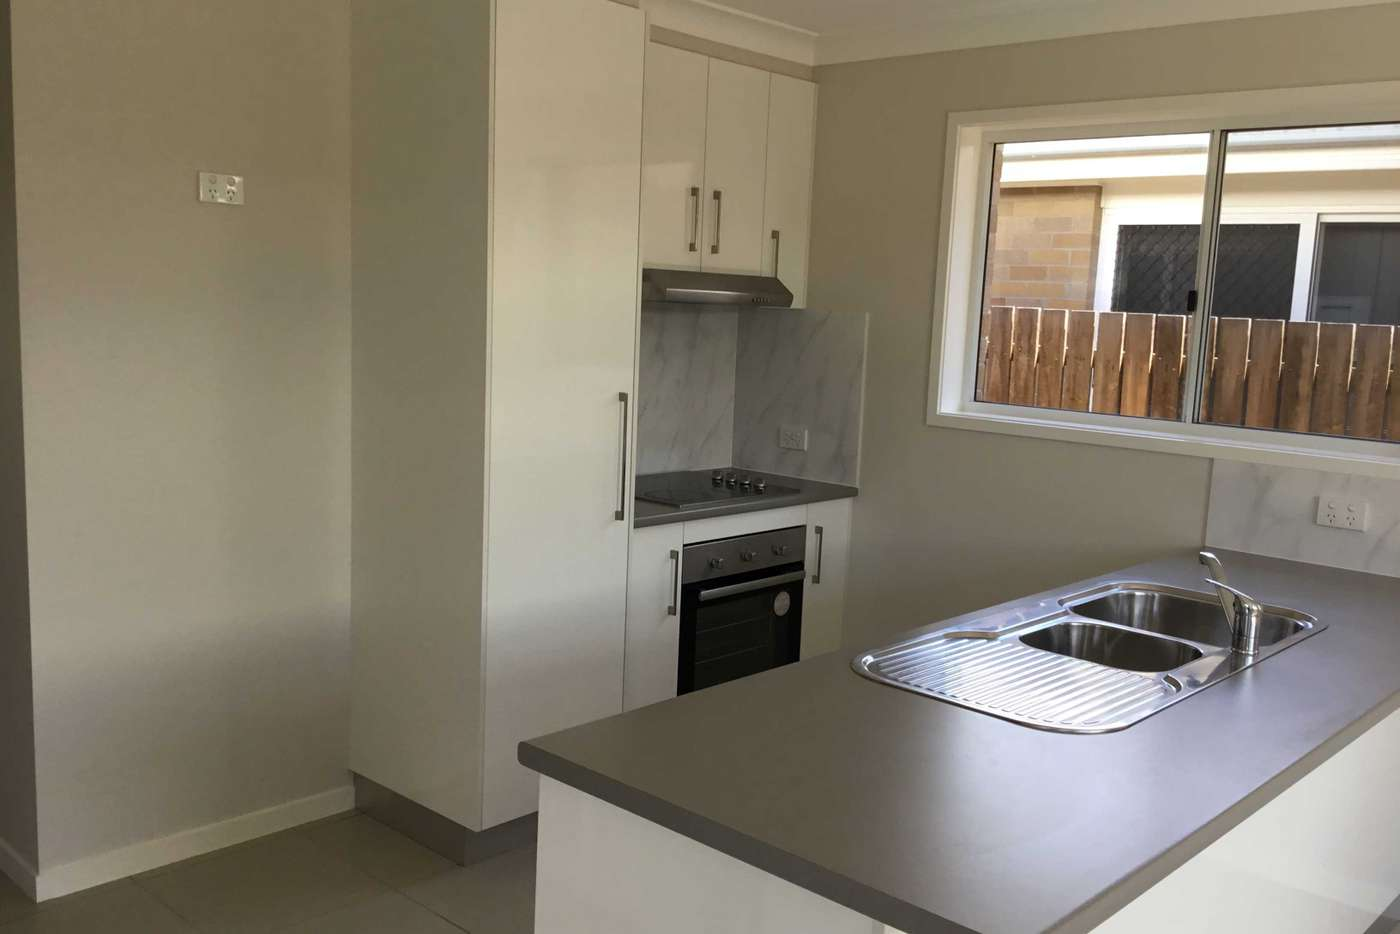 Seventh view of Homely house listing, 1/43 Pratten Street, Warwick QLD 4370